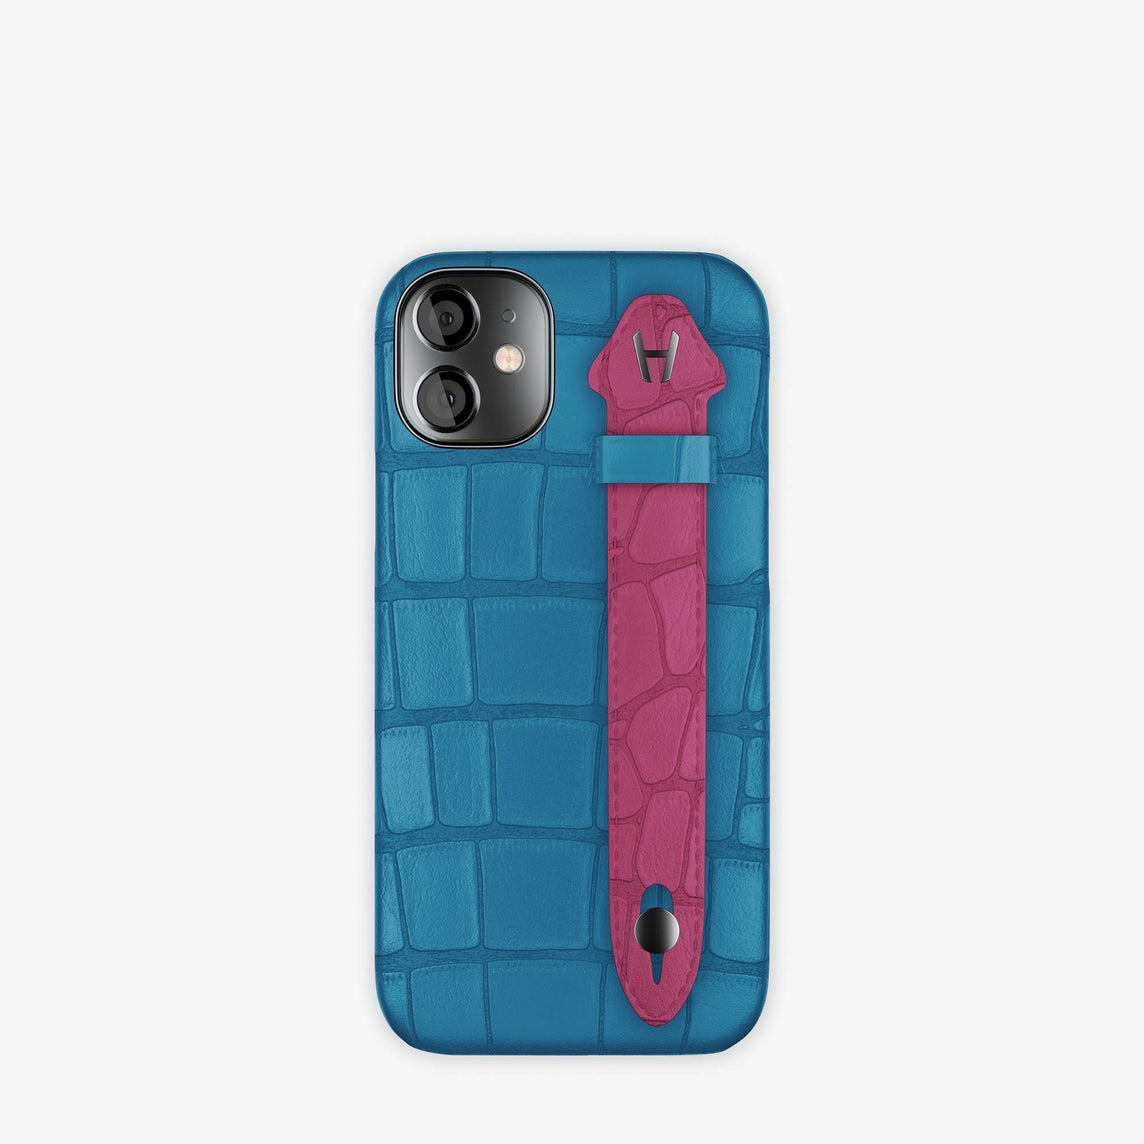 Alligator Side Finger Case iPhone 12 Mini | Blue Lagoon/Pink Fuchsia -Black